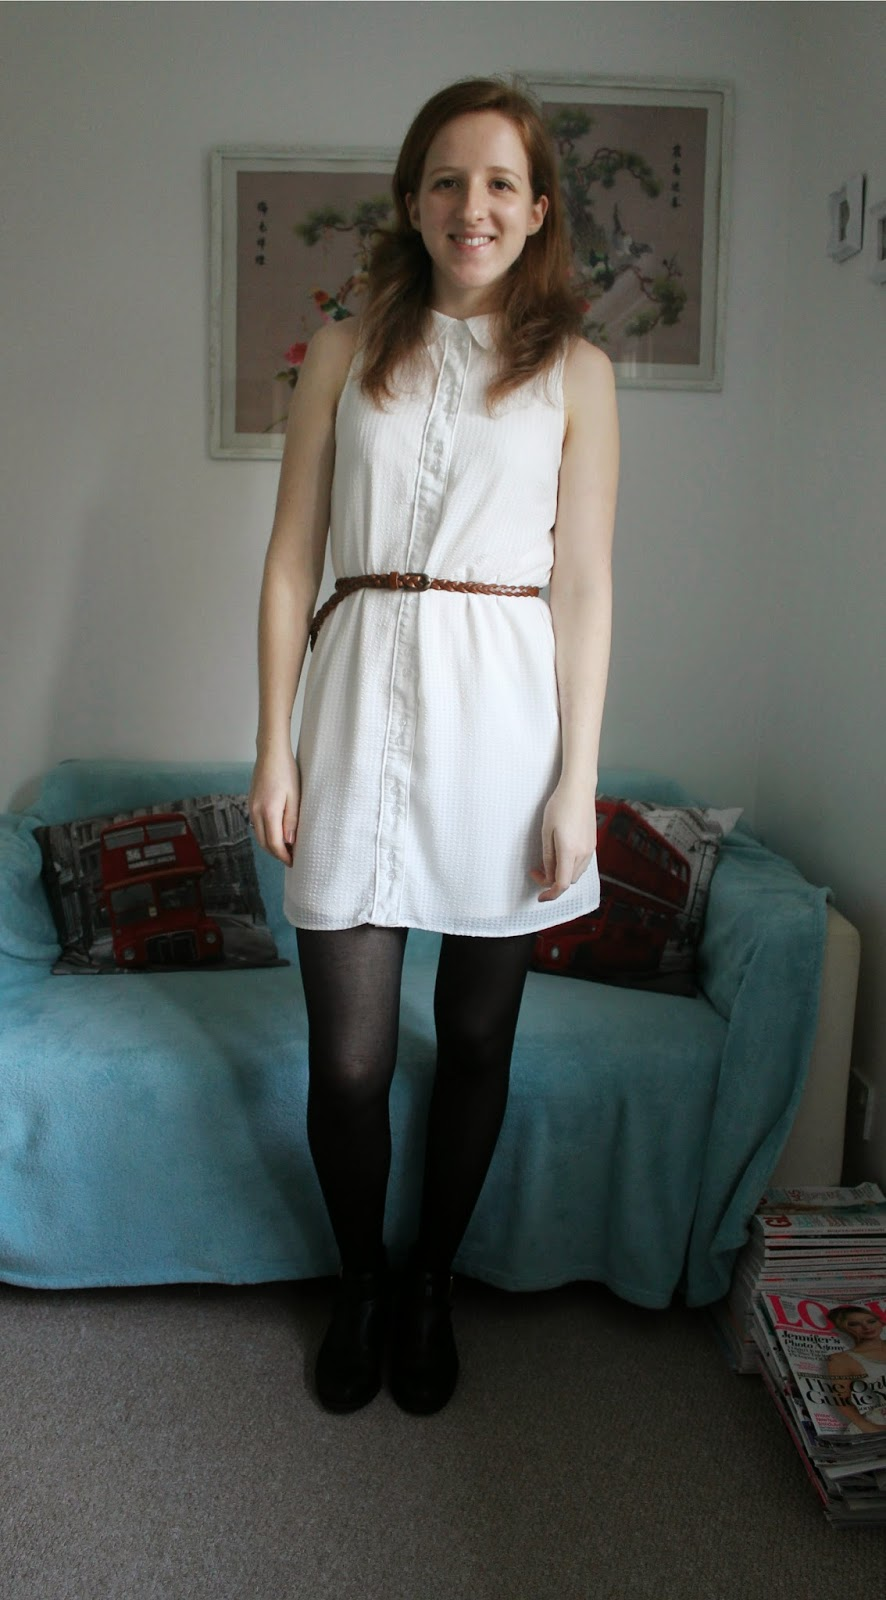 OOTD: Urban Outfitters Peter Pan Collar Dress